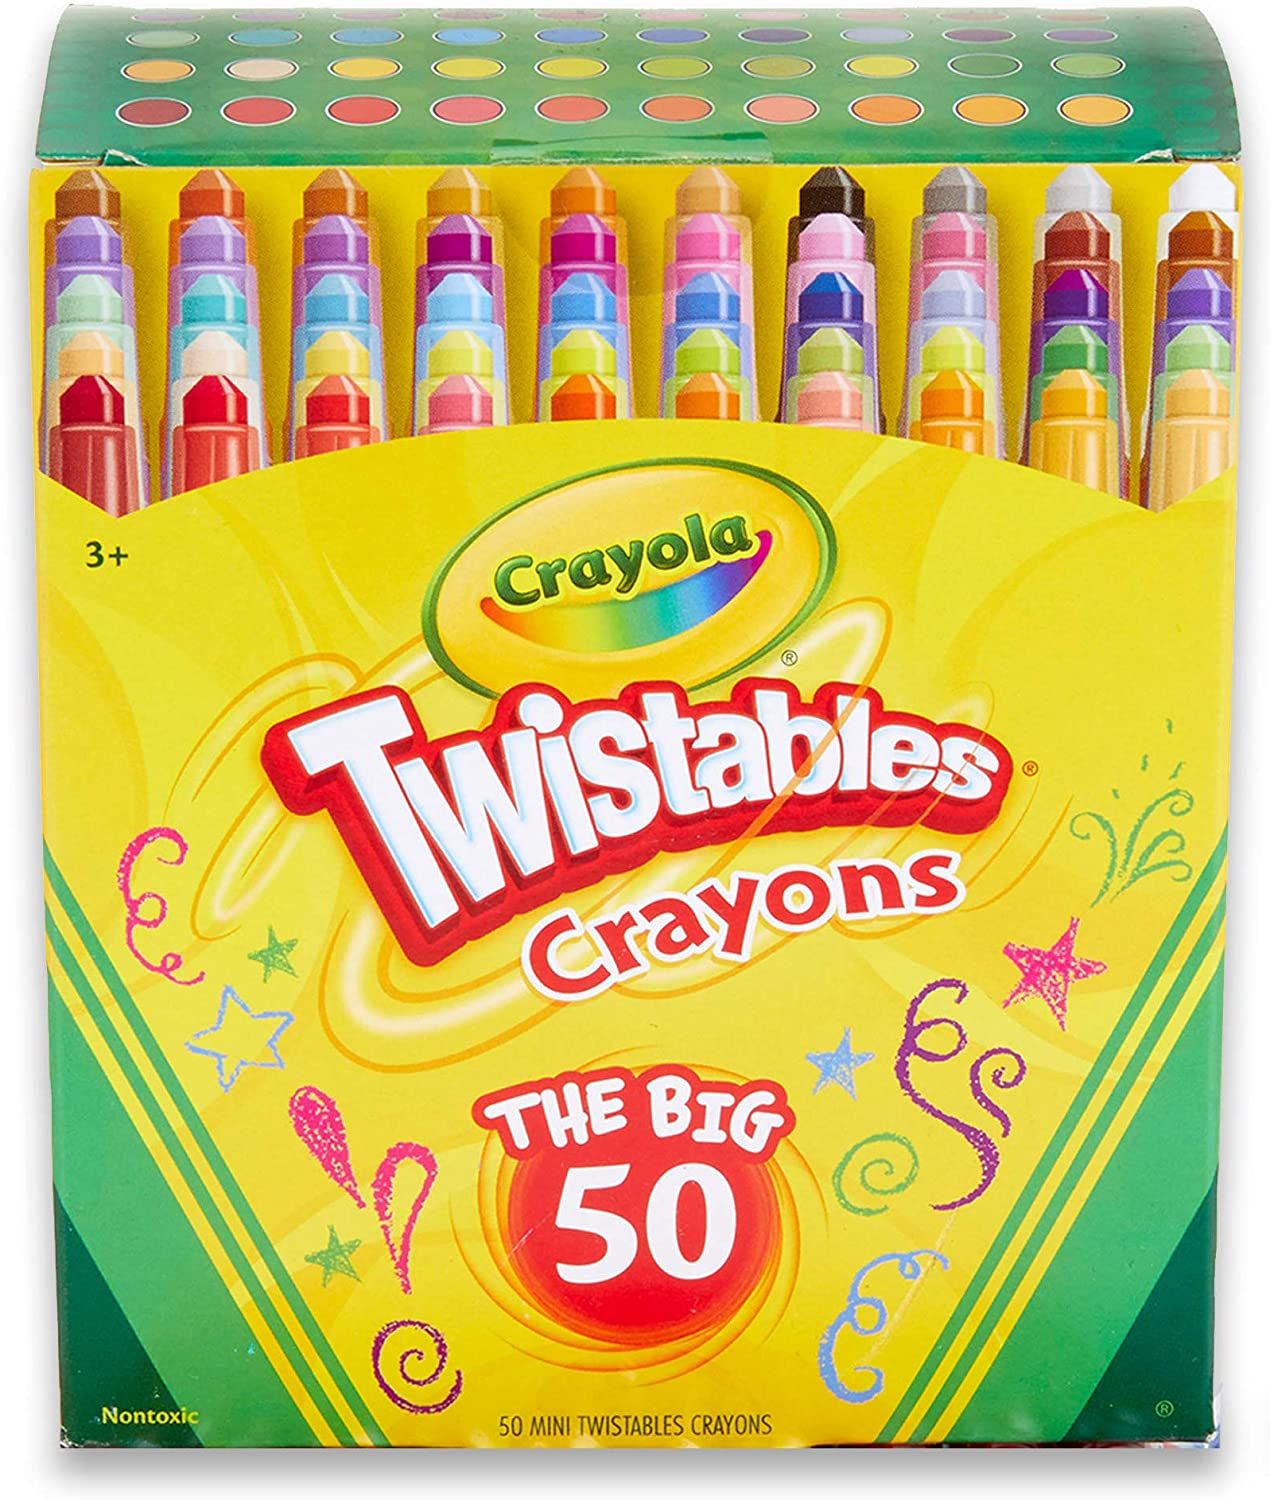 Crayola Twistables Crayons Coloring Set Max 80% OFF Craft Kids online shopping Gi Supplies